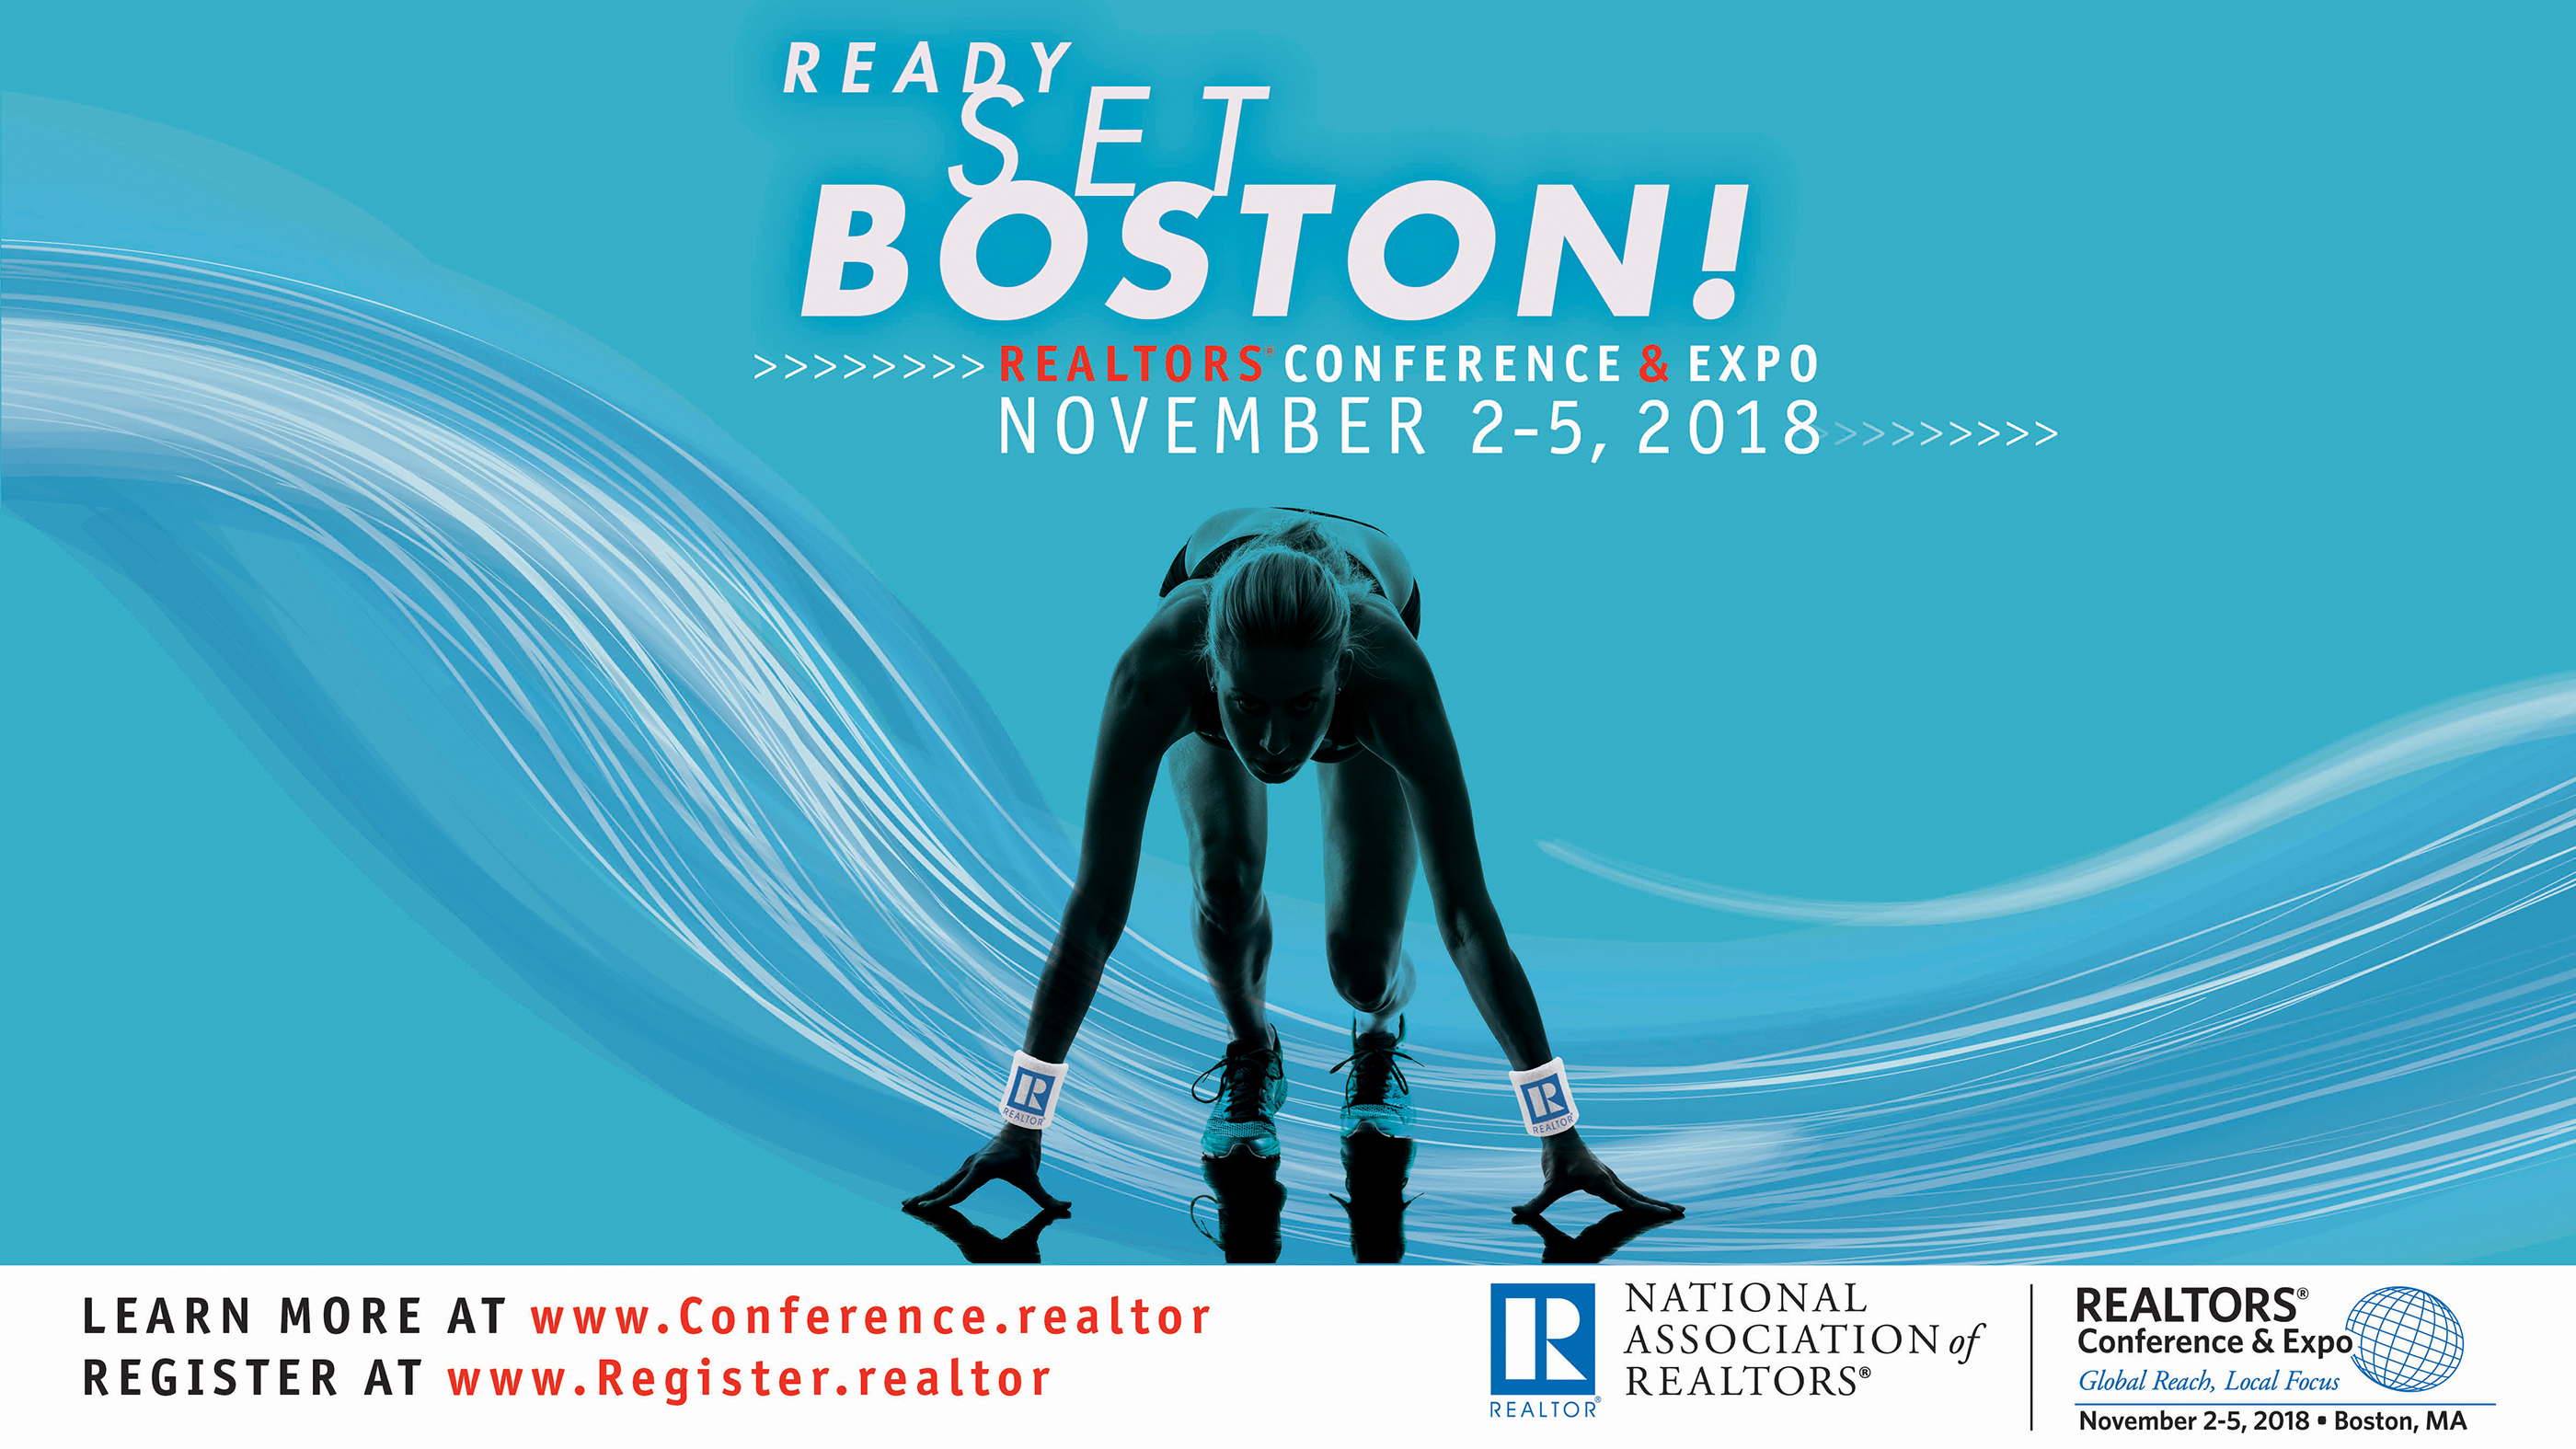 Conference In Boston Wednesday November >> Nar S Realtors Conference Expo Coming To Boston Vermont Realtors